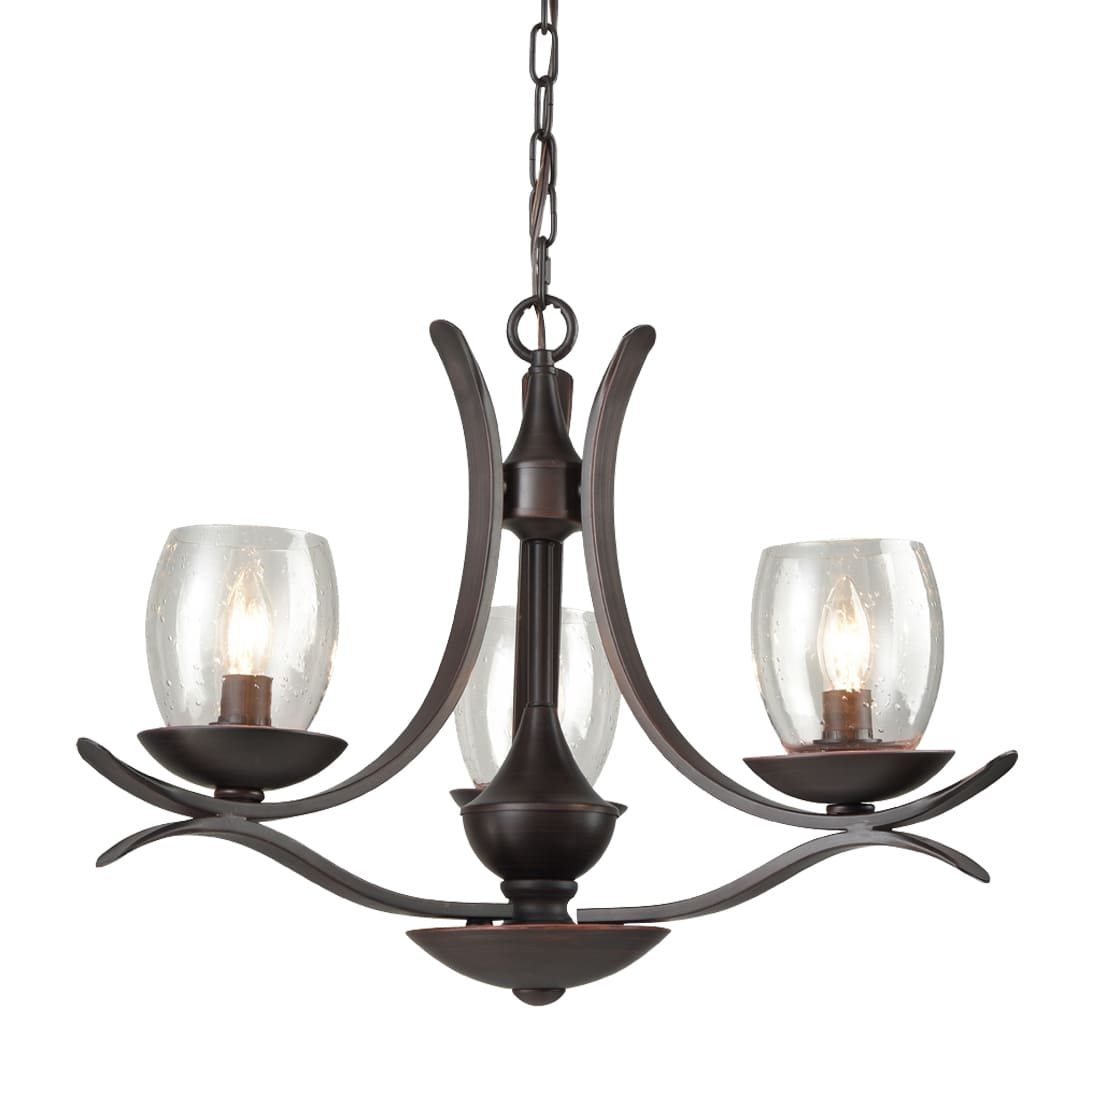 Rustic Bronze Dining Room Chandelier with Seeded Glass - 3 Light